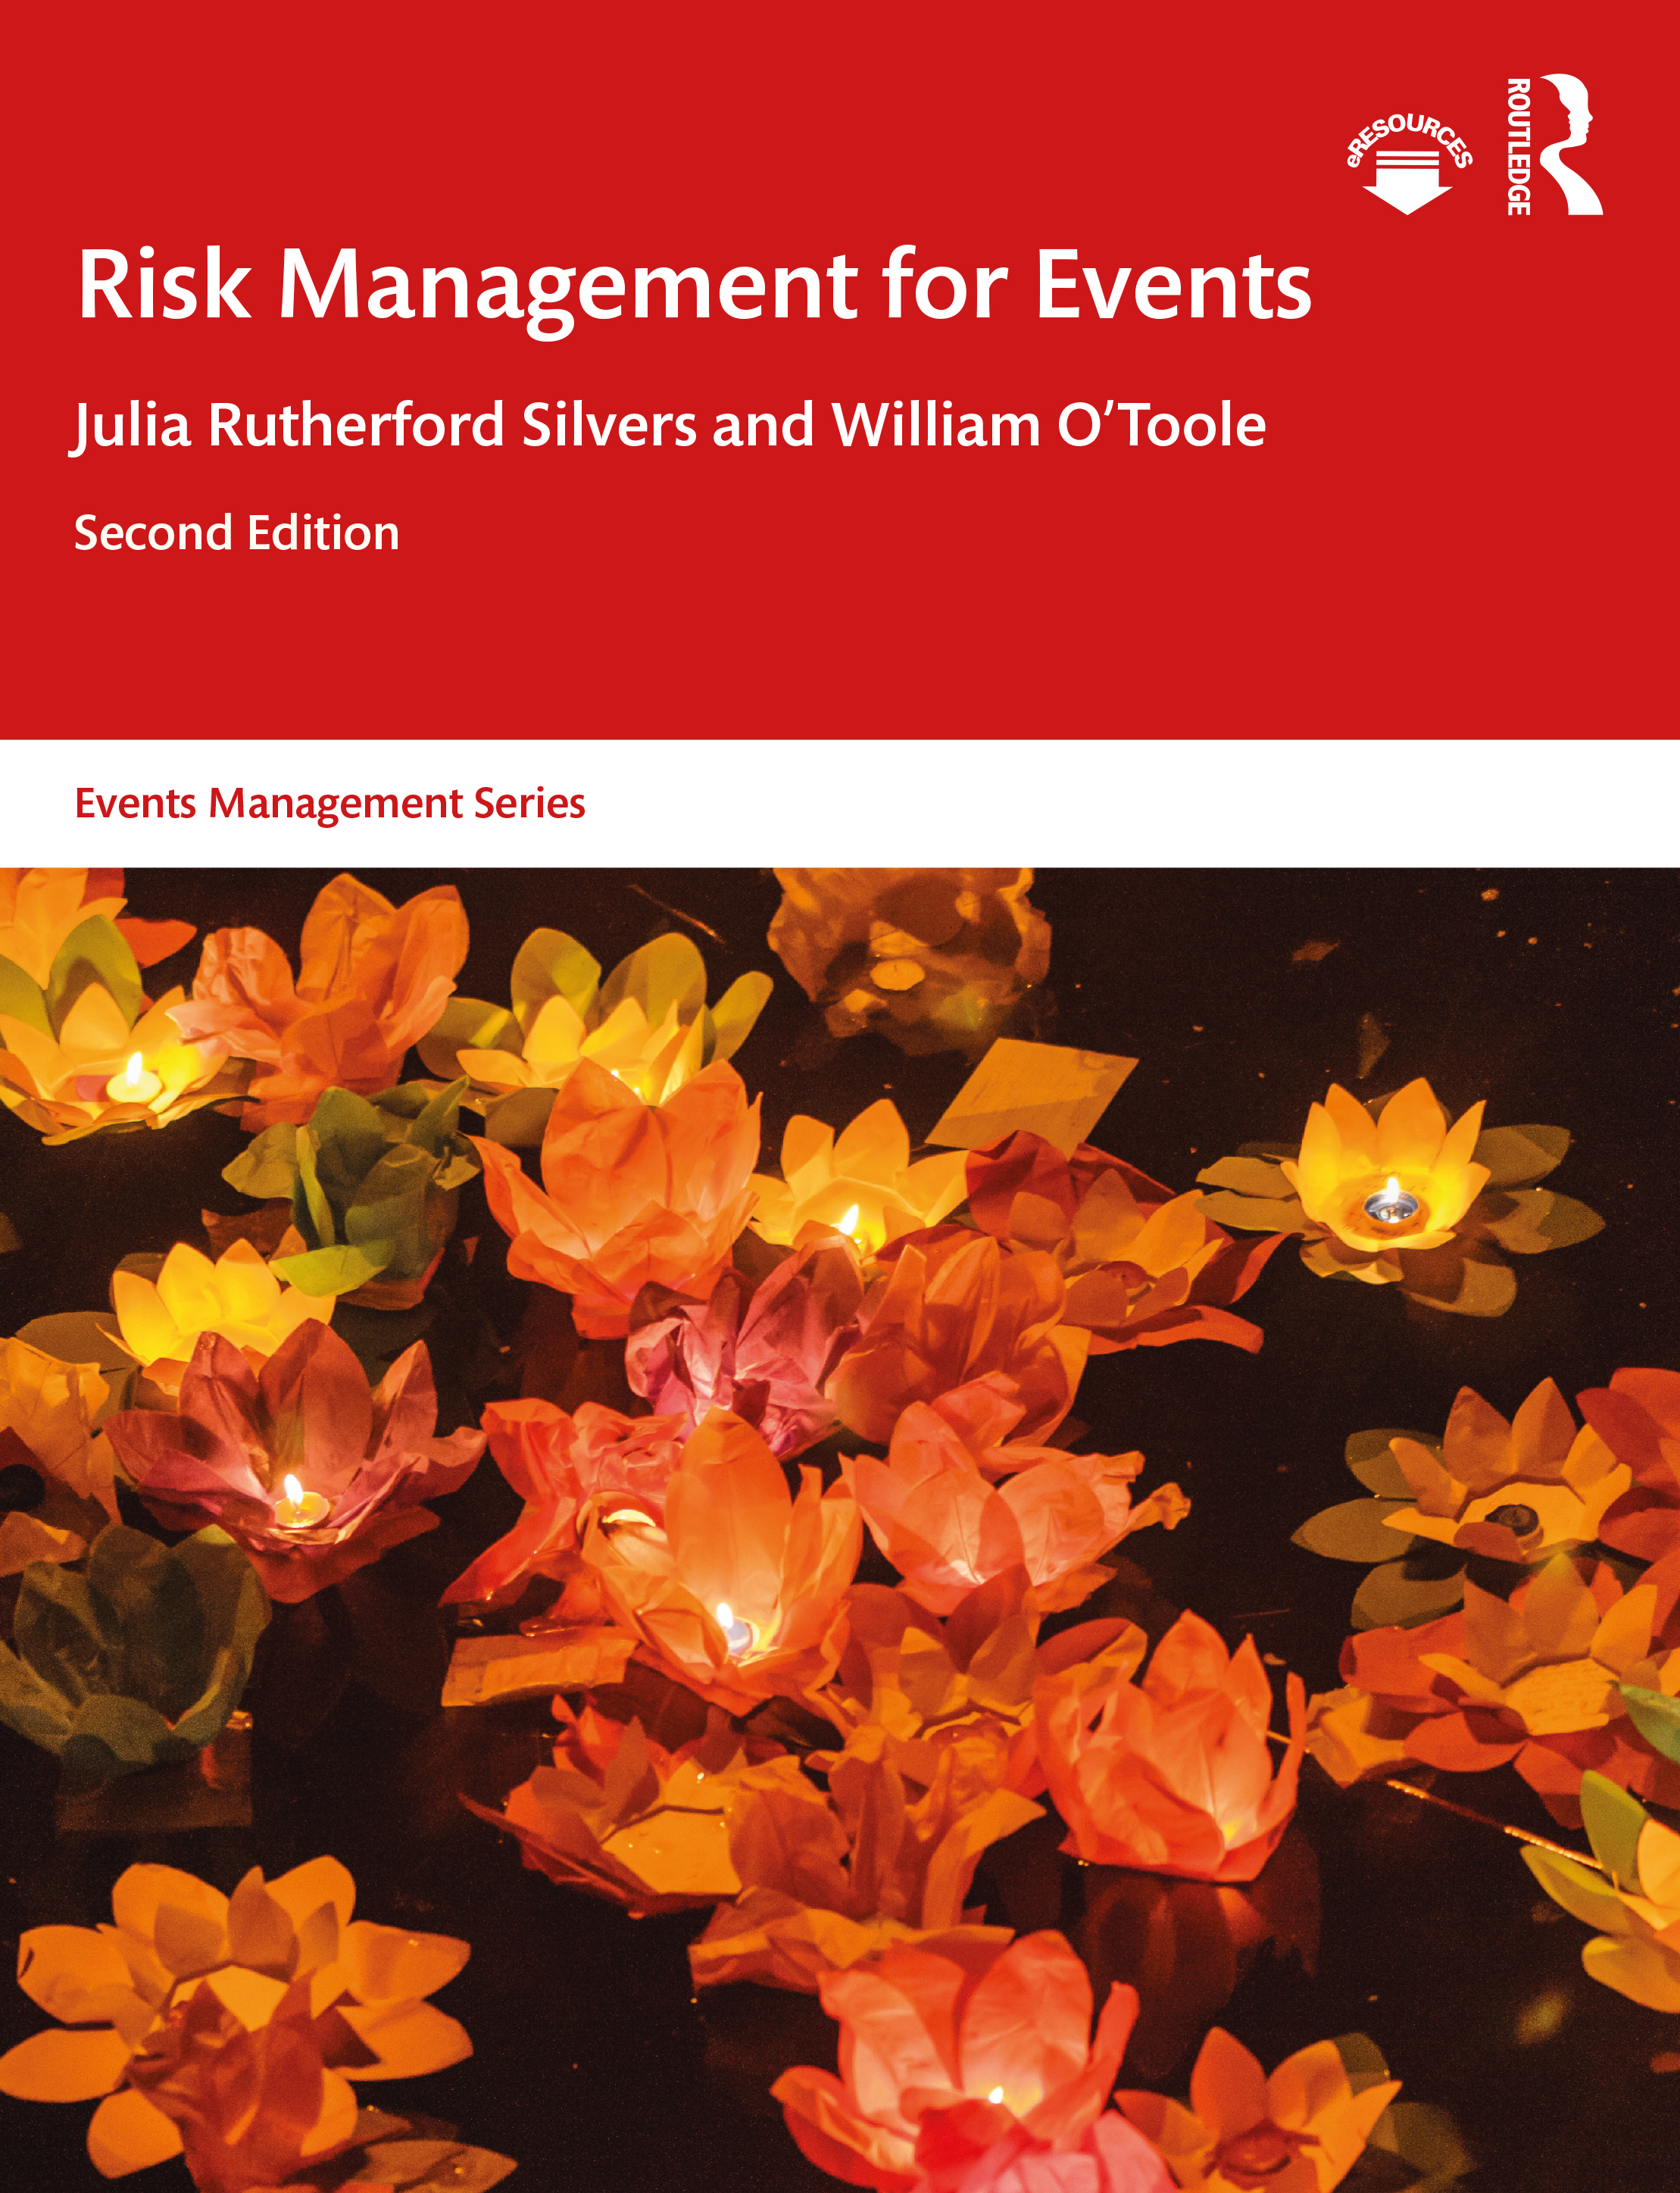 The role of risk management for events